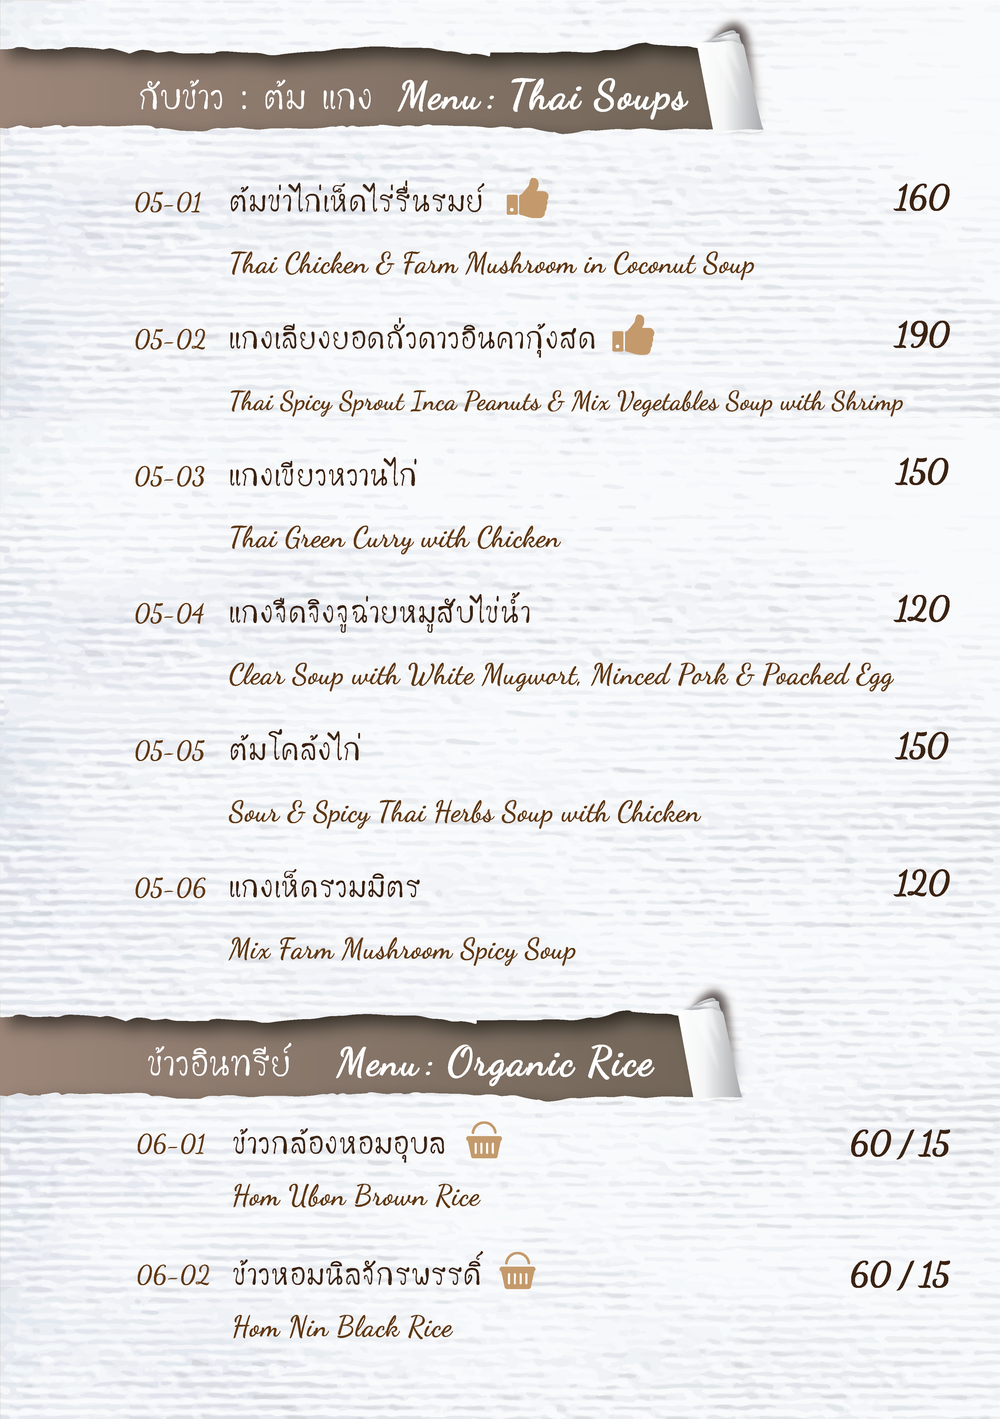 _กับข้าวบ้าน.Final.Menu.List&Signature.30.11.59_17 page_Page_15.png